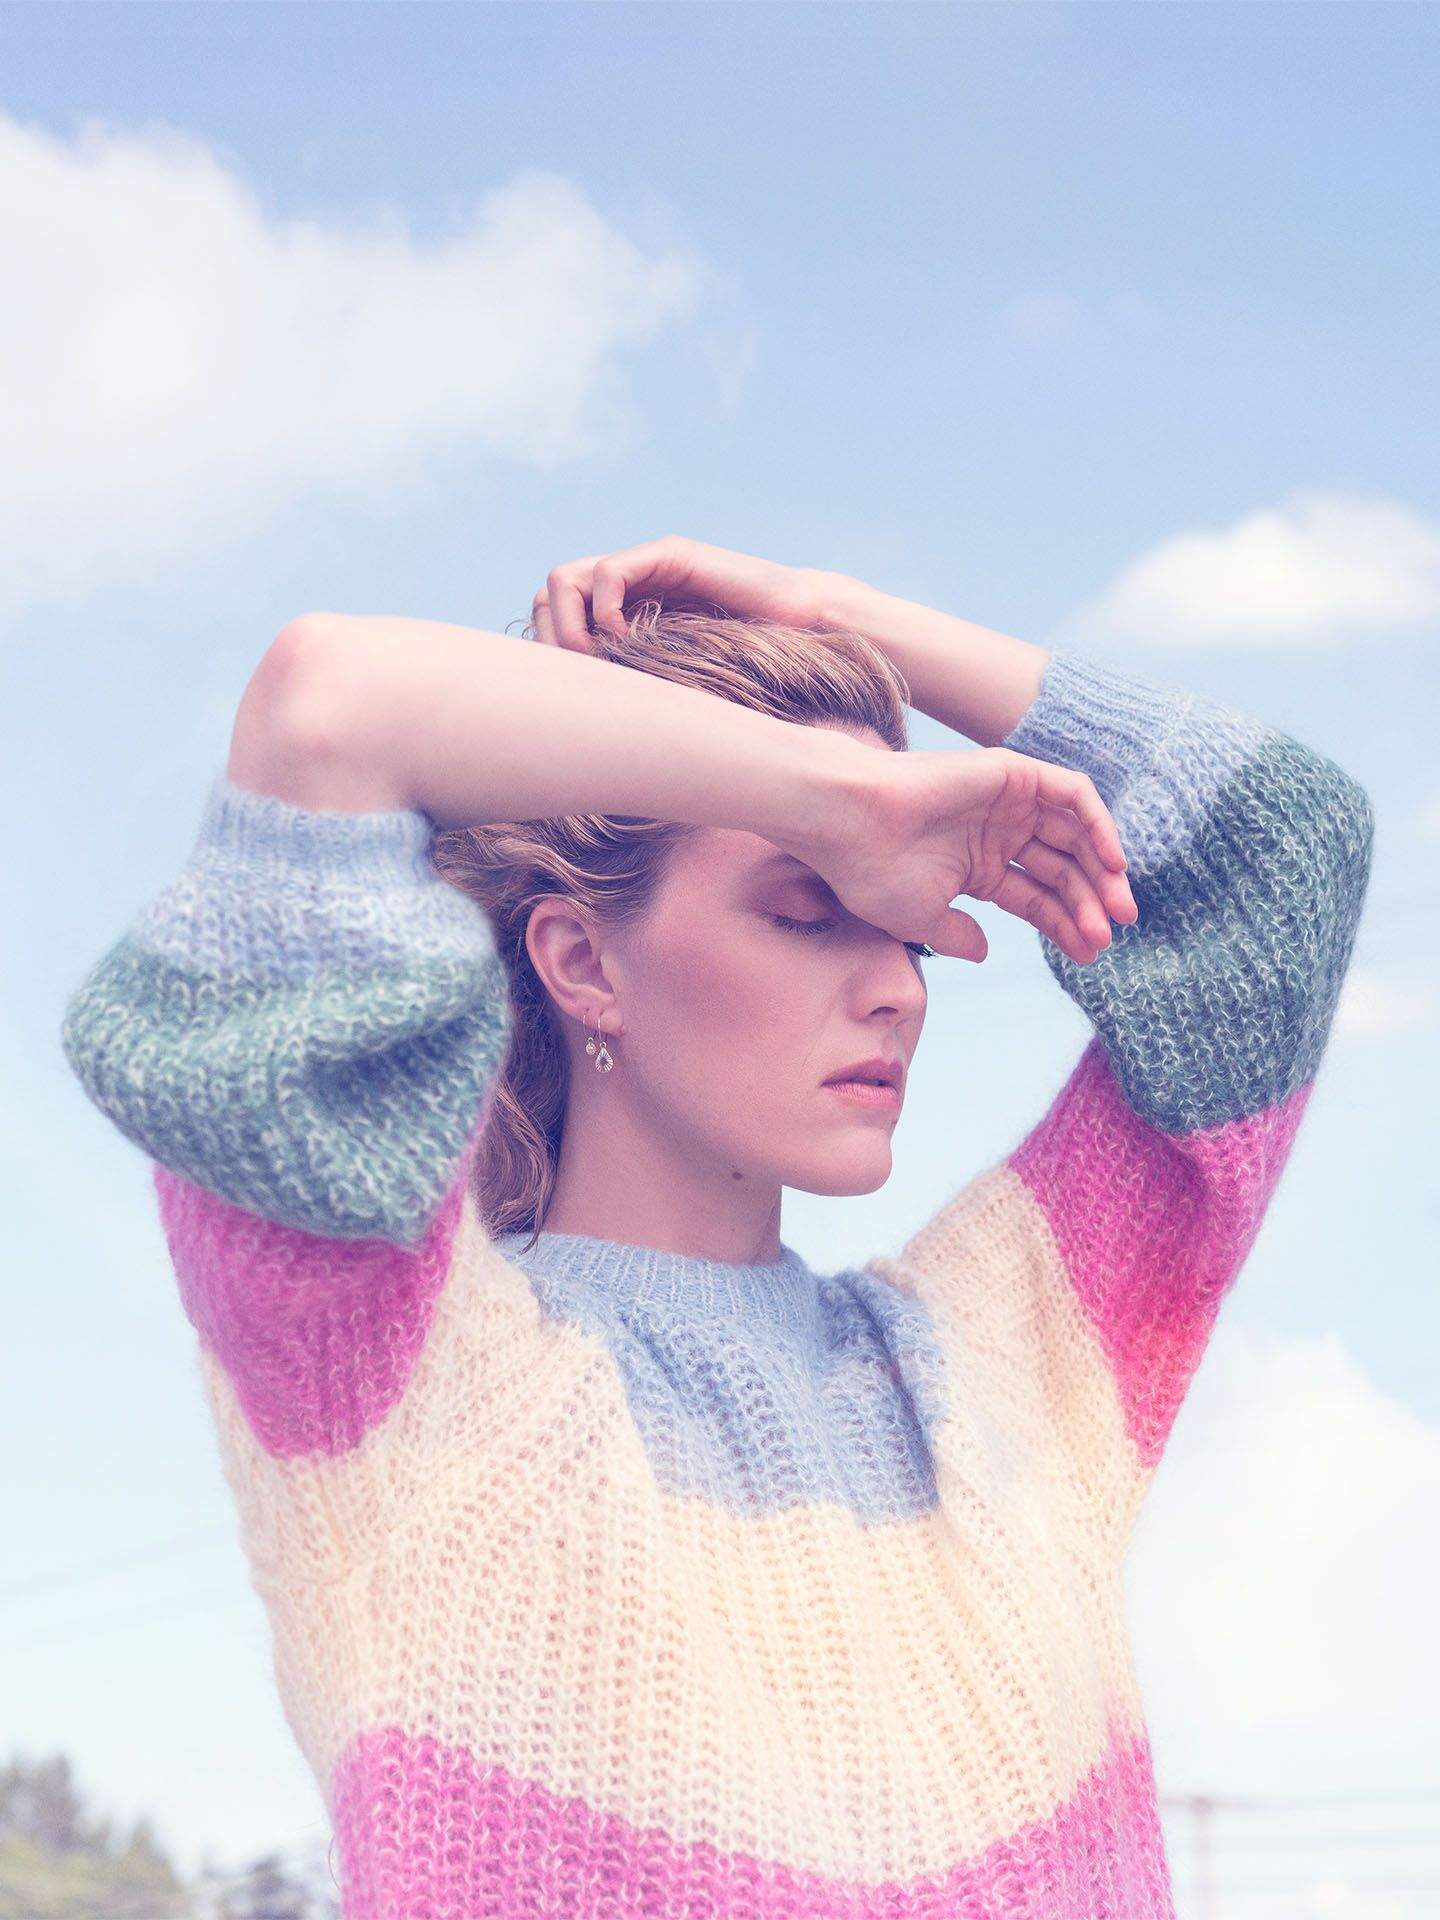 portrait of Evelyne Brochu in pastels colours eyes closed arms above her head by Jocelyn Michel for Voir